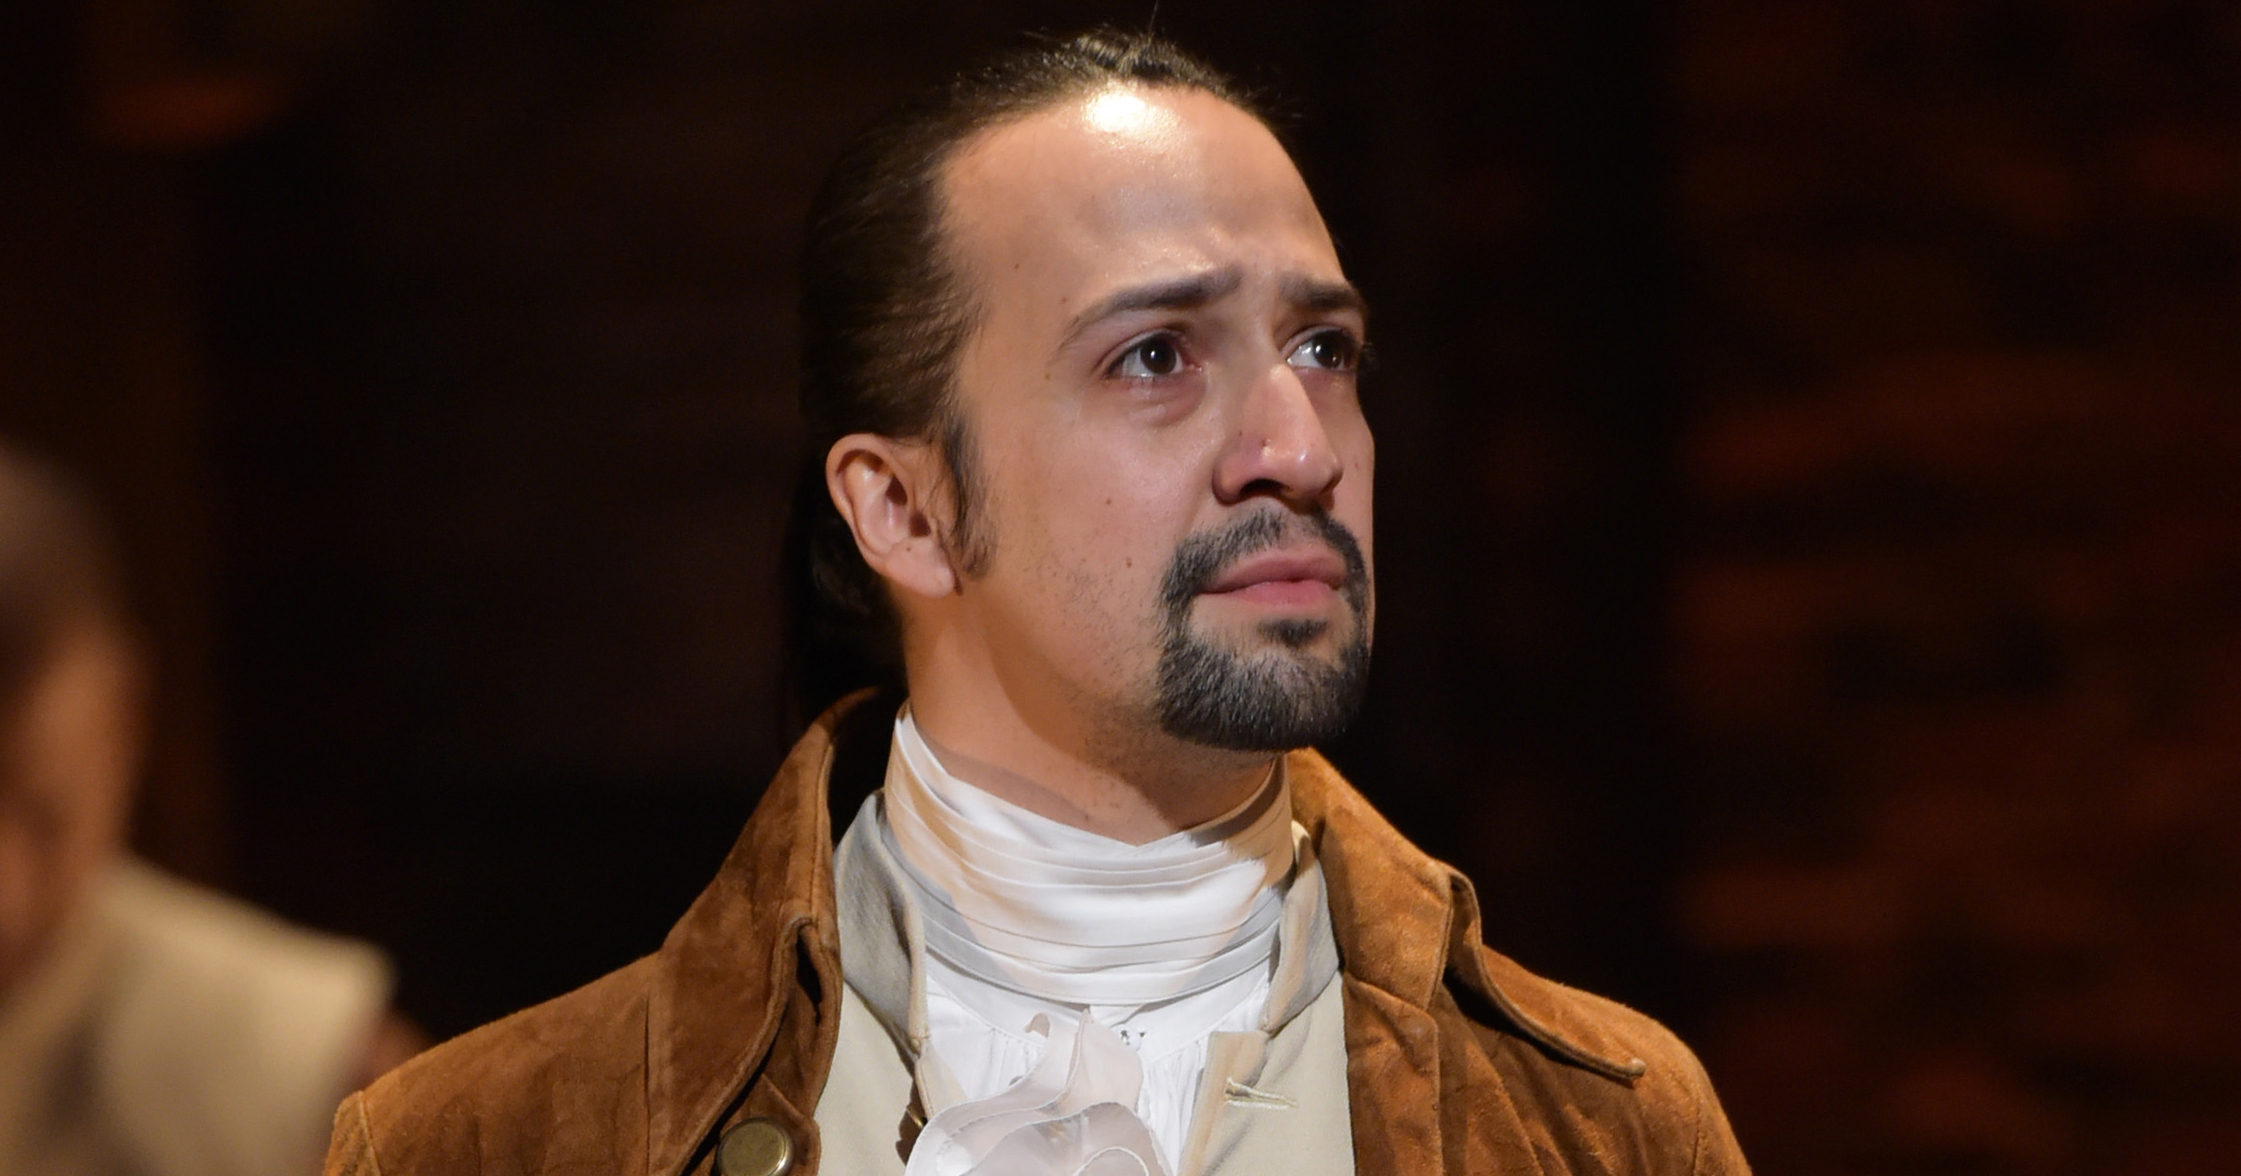 Lin-Manuel Miranda performs during the Hamilton GRAMMY performance on Feb. 15, 2016 in New York City.